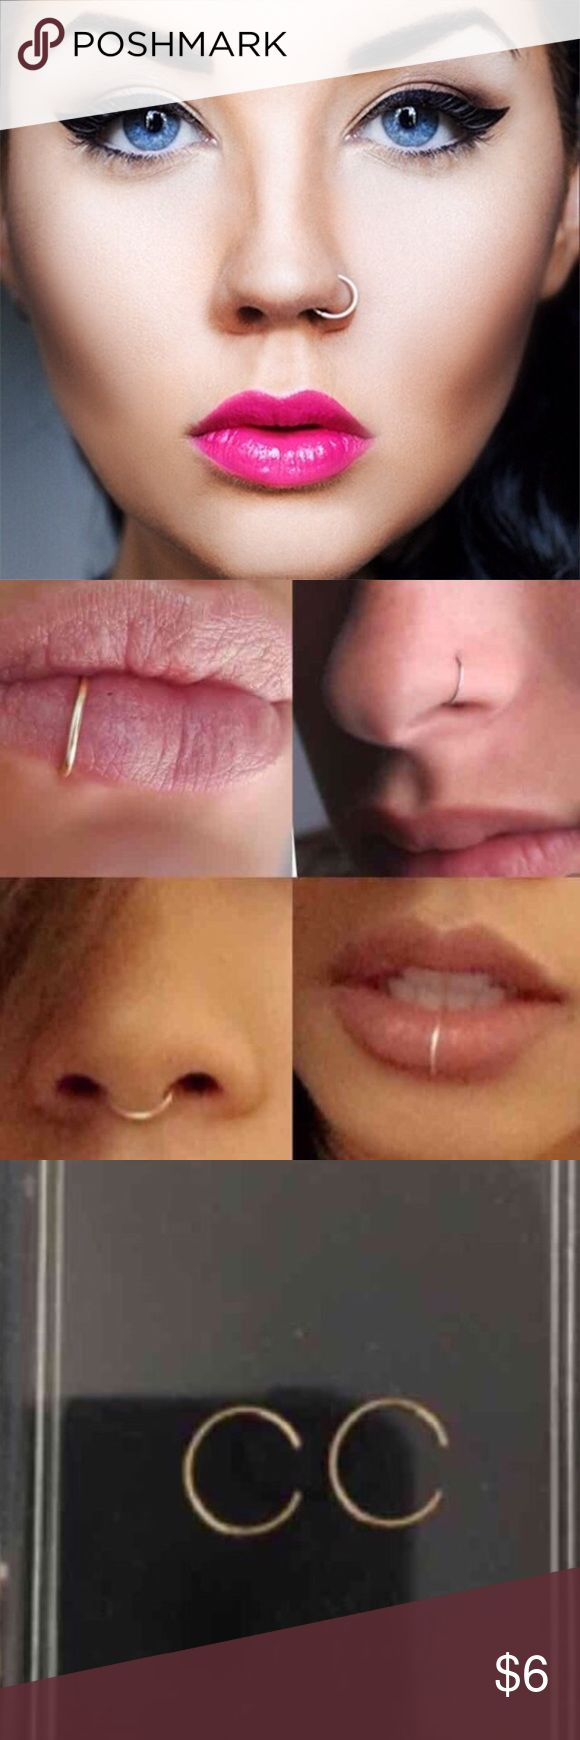 Fake lip and nose rings.. brand new..Never used Fake lip and nose ring  One fake lip ring  One fake nose ring Color:Gold Brand new/Never used--bundle and get this for $3 MAC Cosmetics Makeup Lipstick